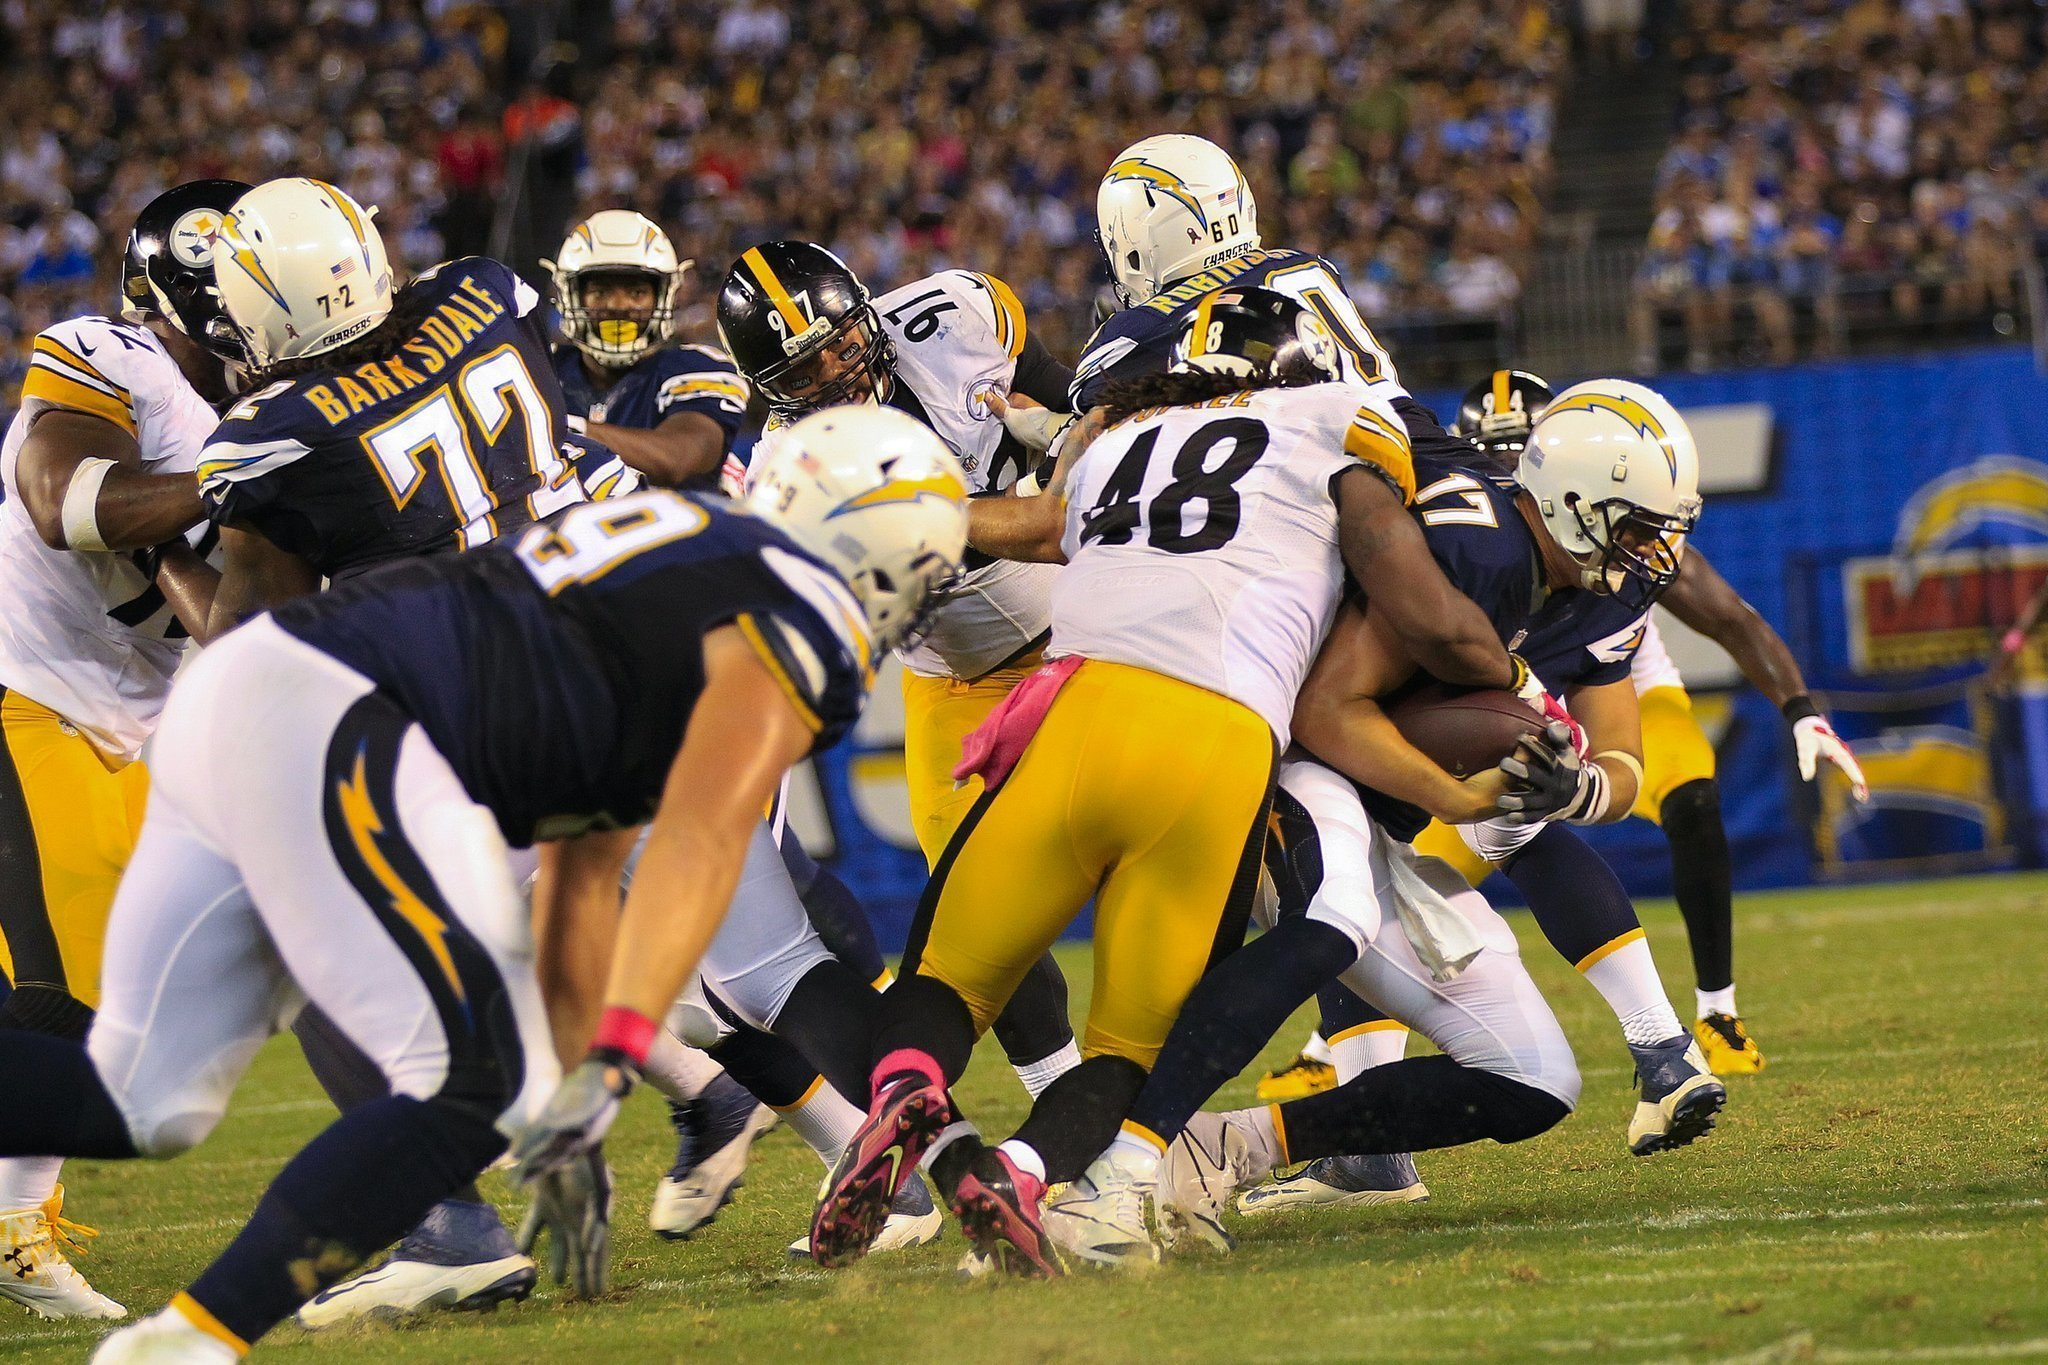 Chargers Vs Steelers Post Game Analysis The San Diego